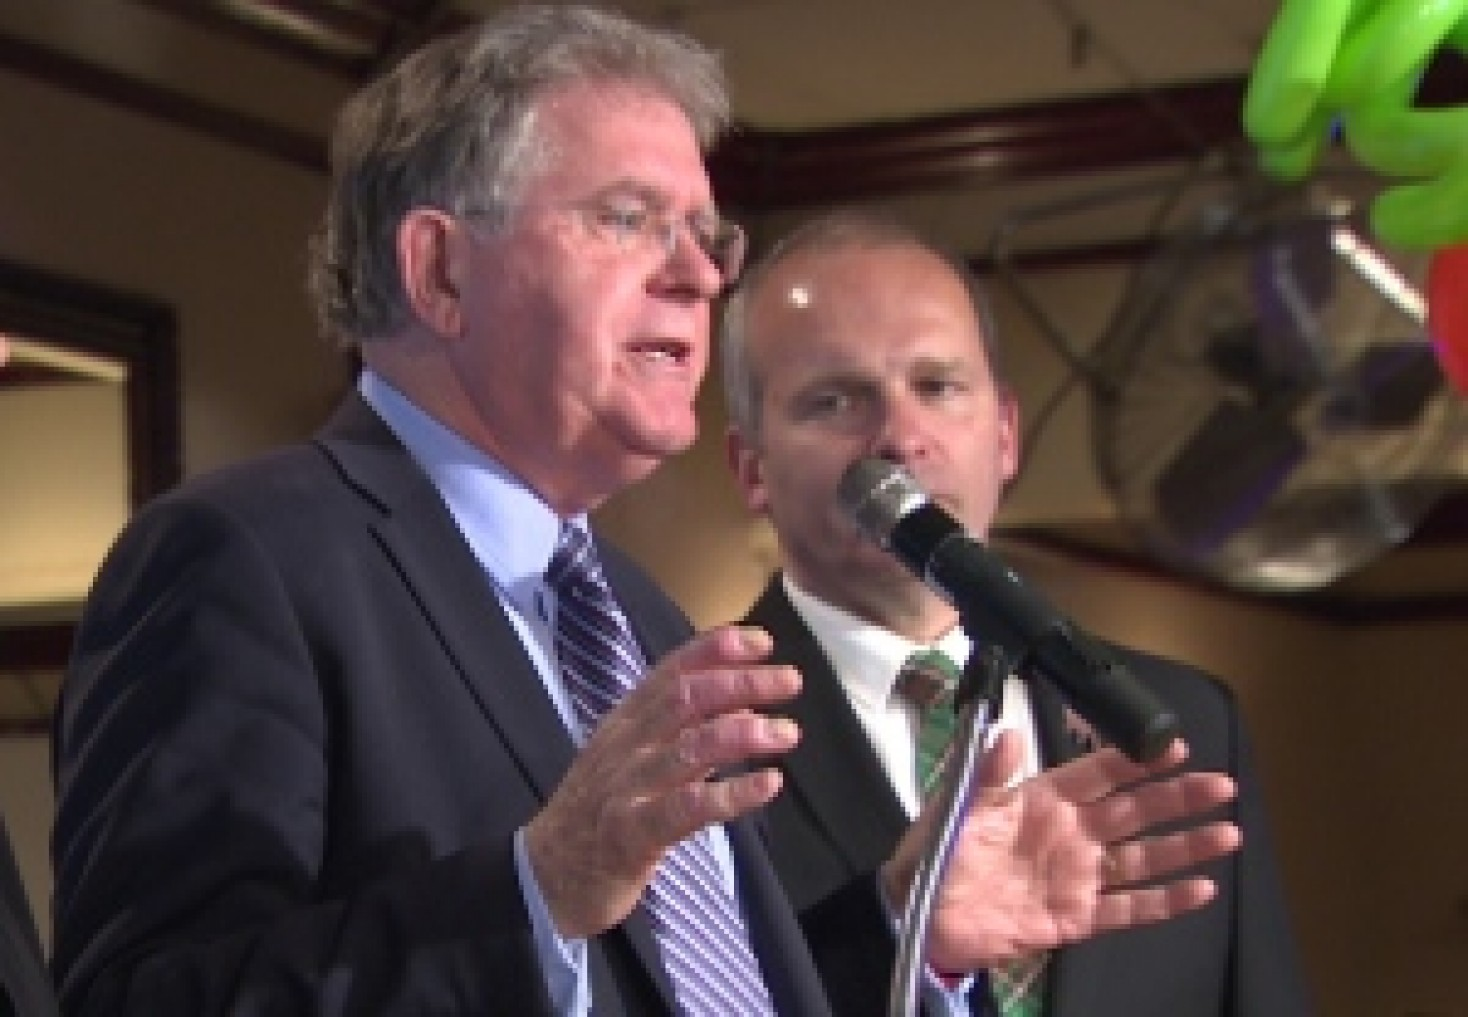 BoomOrBust 2015 Blog – Did Jack Harris lose because of a poll?